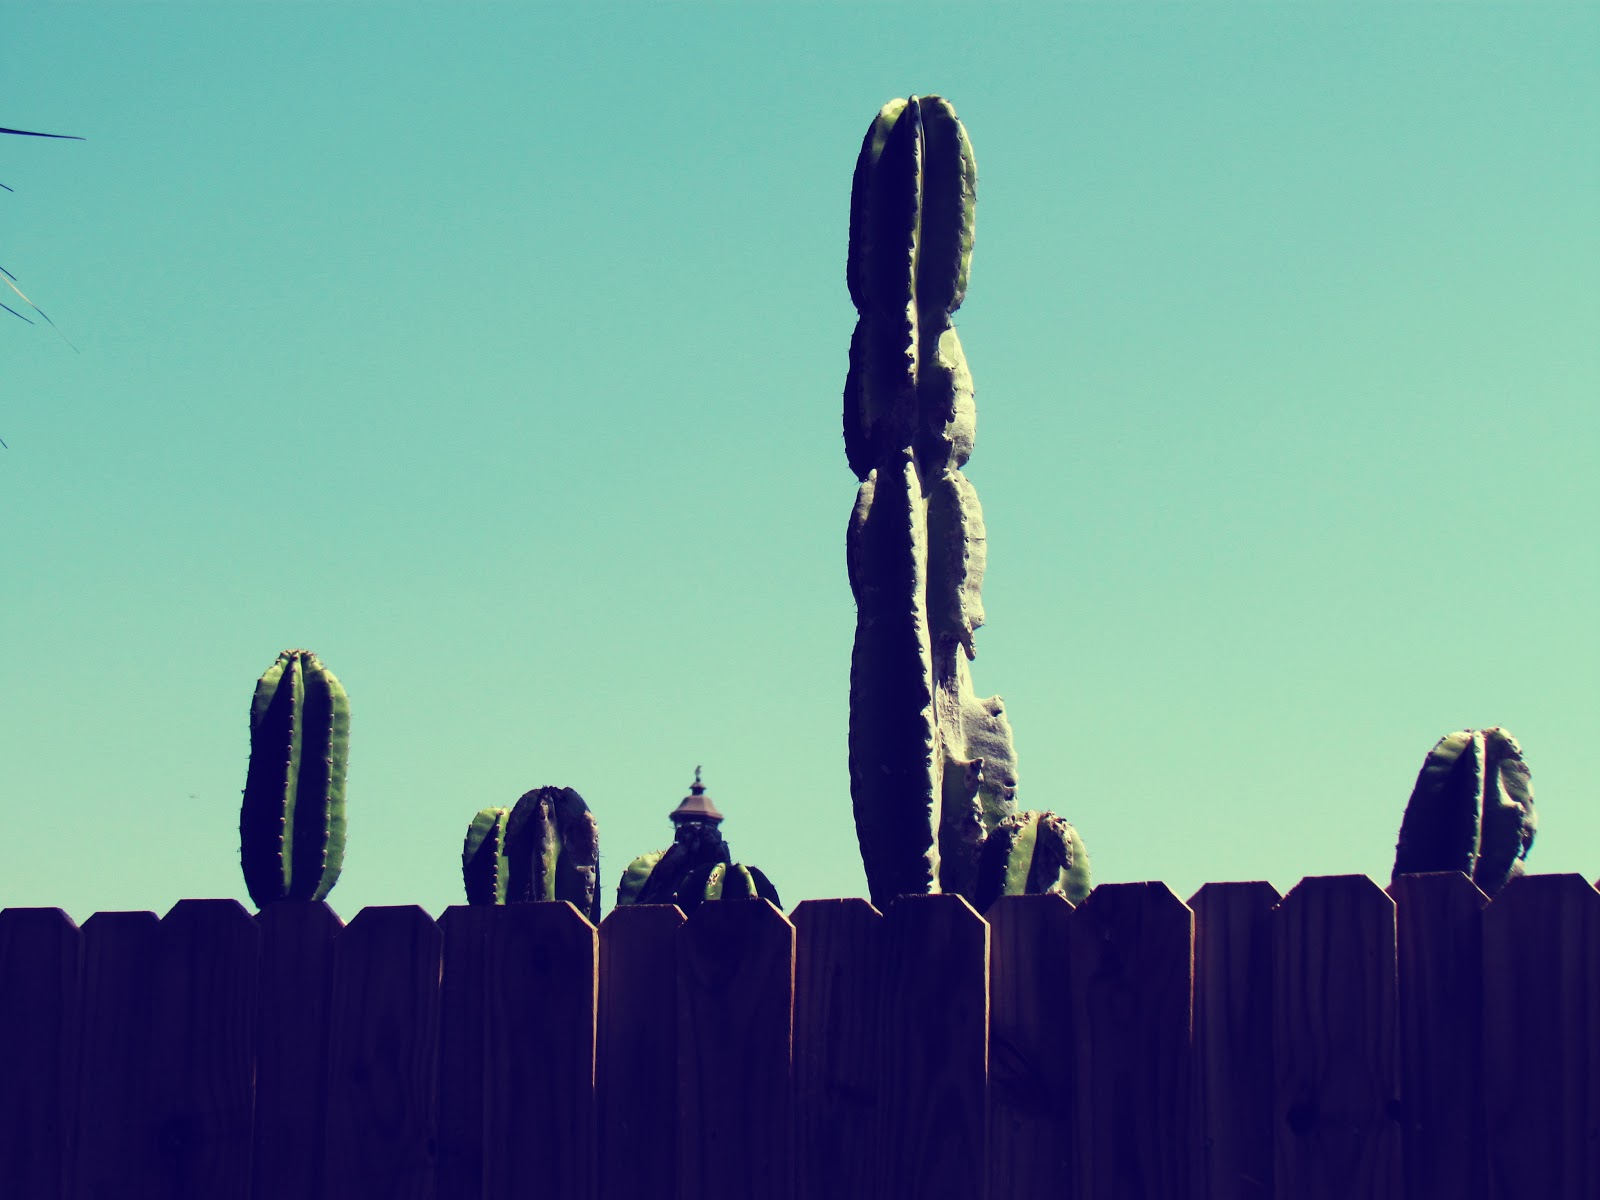 A brown wooden fence with giant saguaro cactus desert plants in backyard